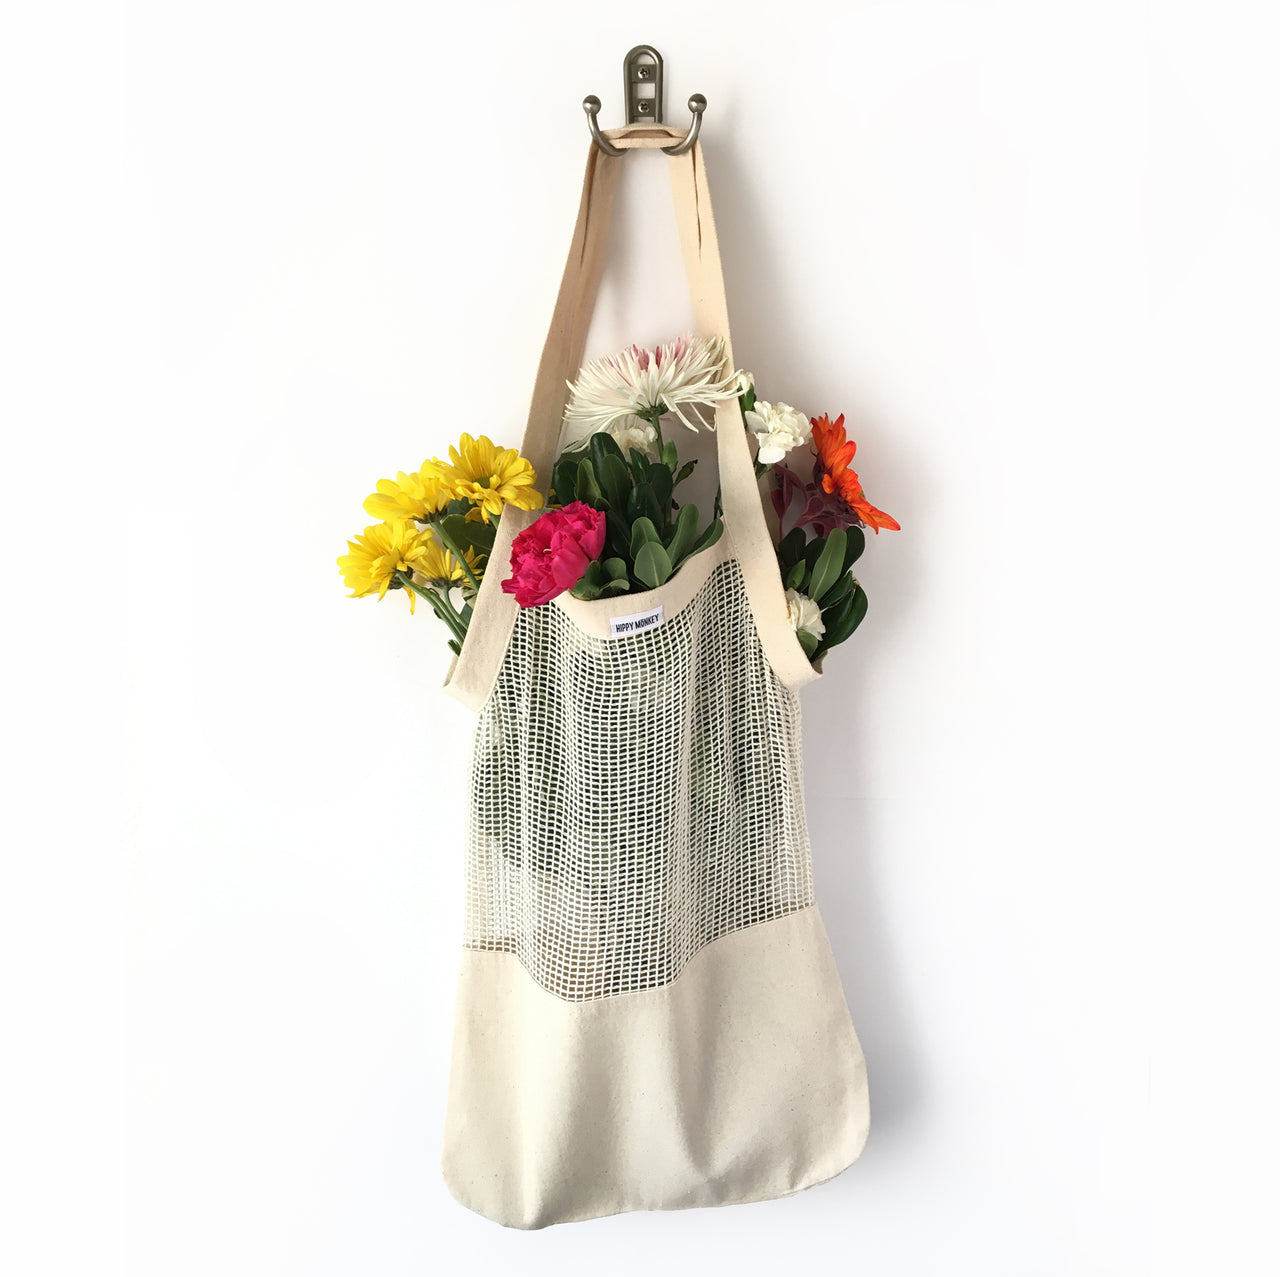 Organic Cotton Produce Bag with Canvas